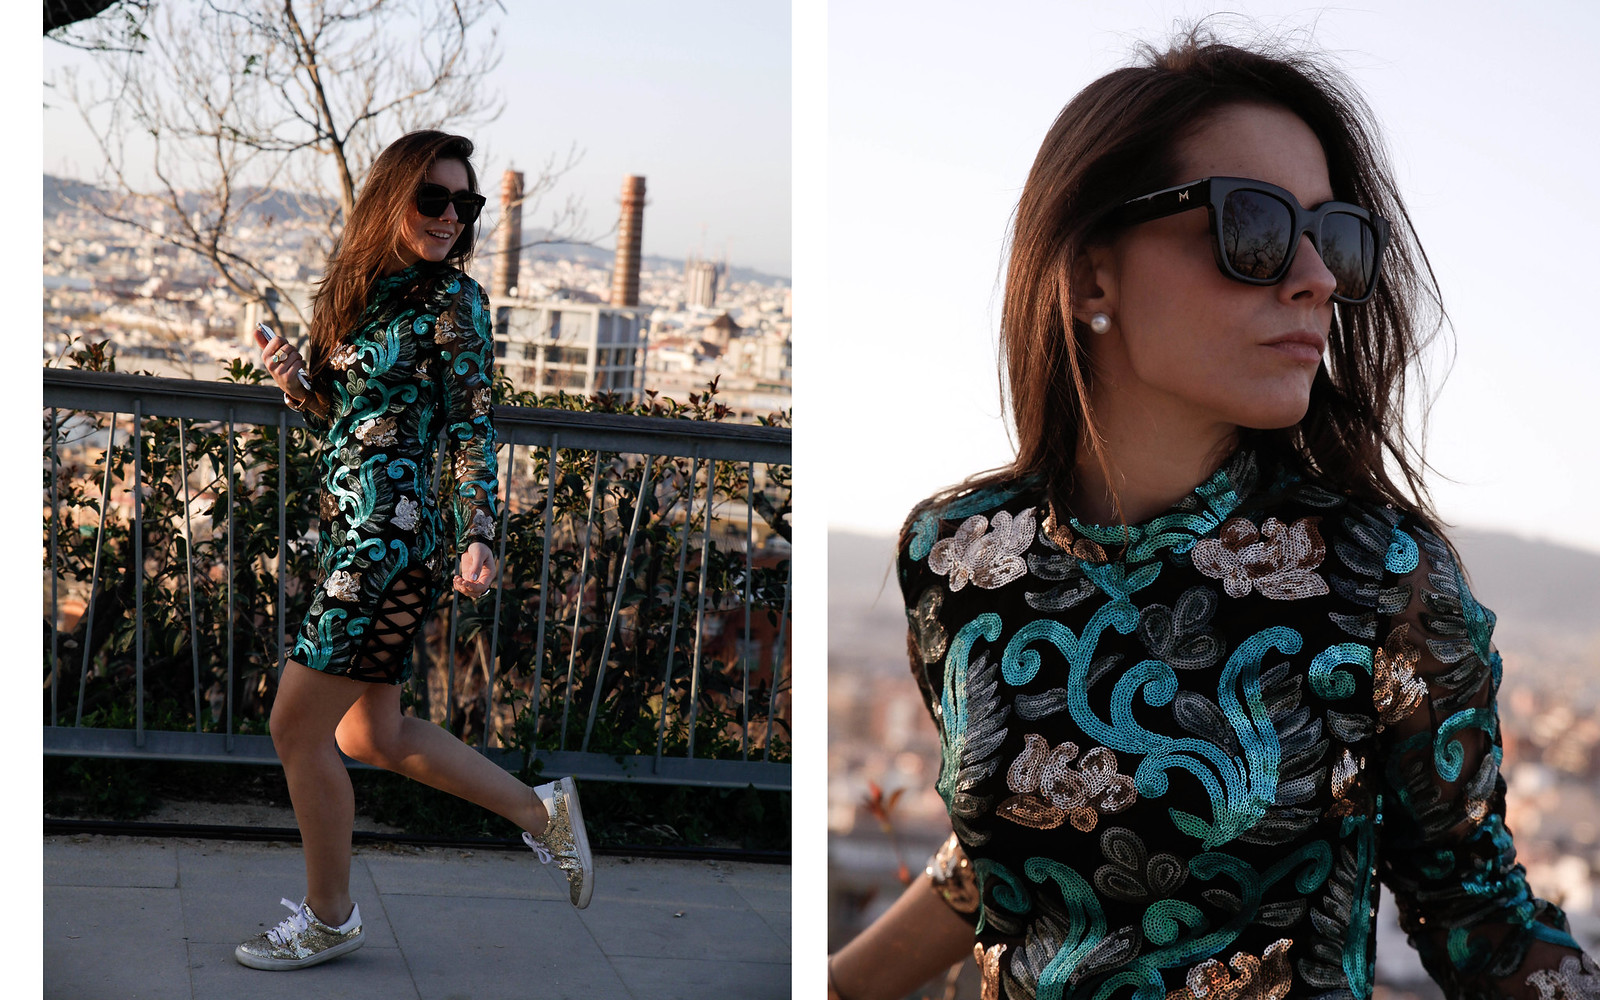 011_Green_sequins_dress_outfit_the_guest_girl_theguestgirl_laura_santolaria_fashion_blogger_danity_paris_influencer_barcelona